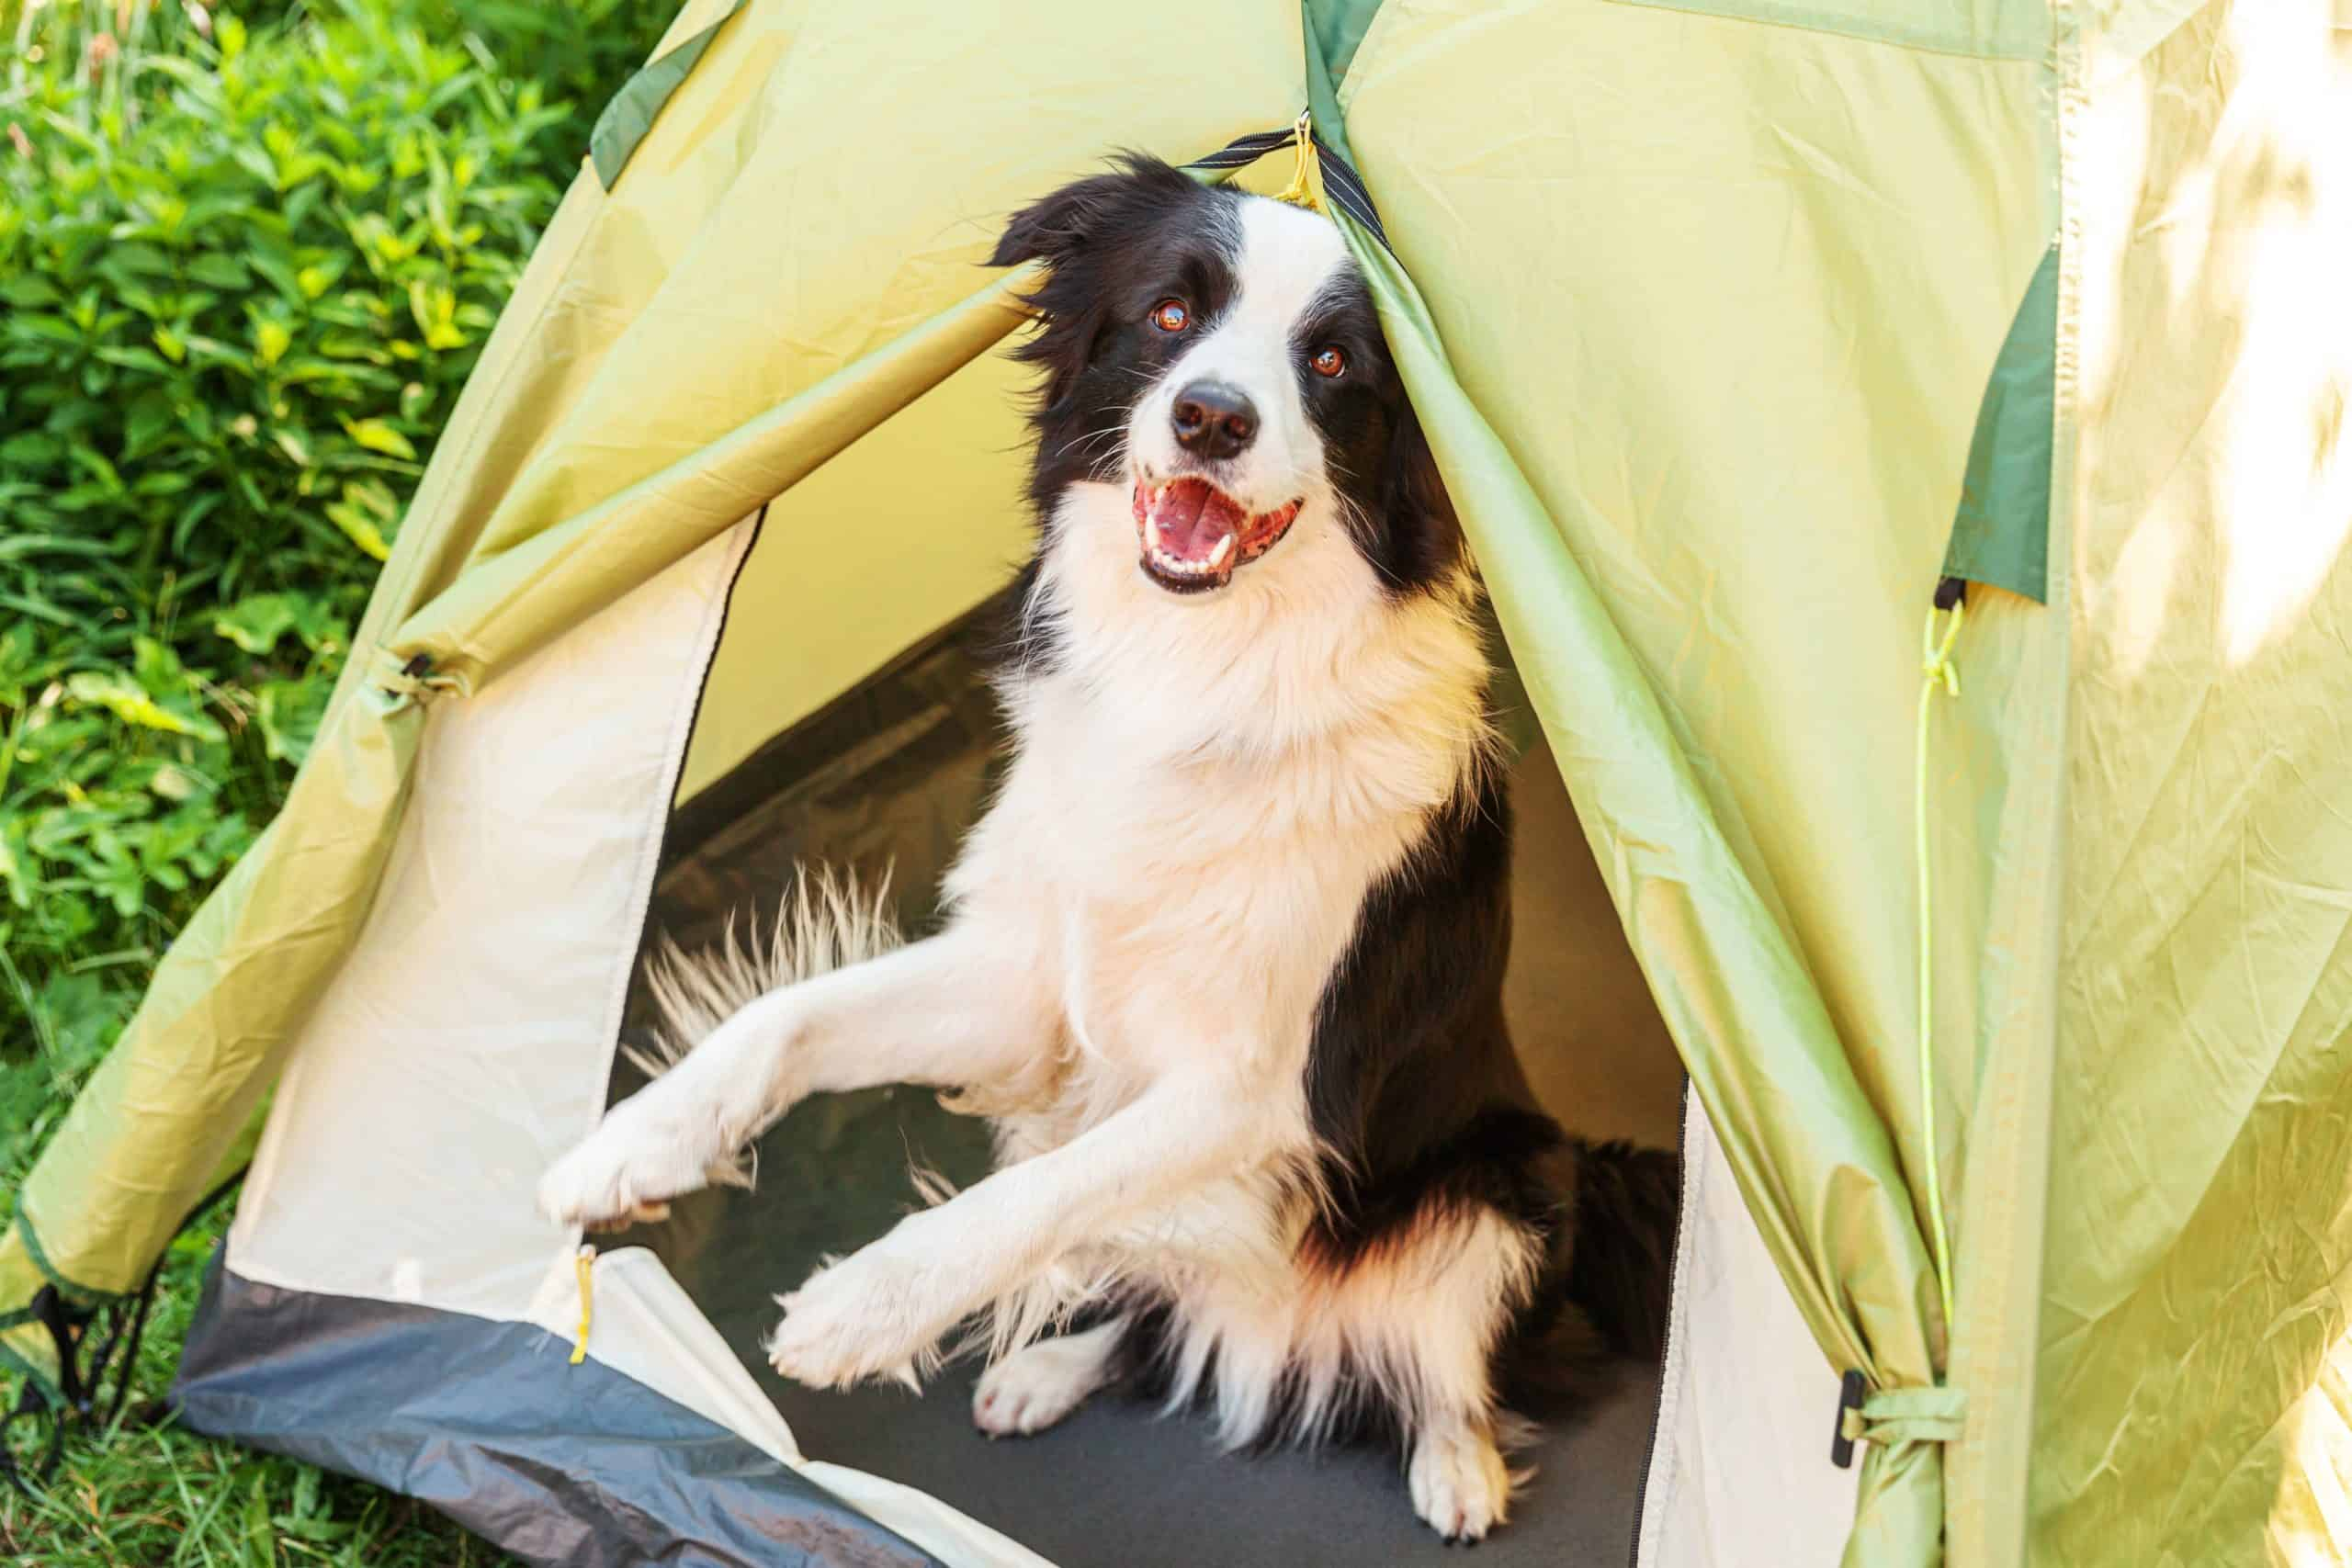 Border collie sits in a tent. The best dog breeds for camping combine high energy with obedience and curiosity. Bonus for smaller dogs that fit comfortably in your tent.